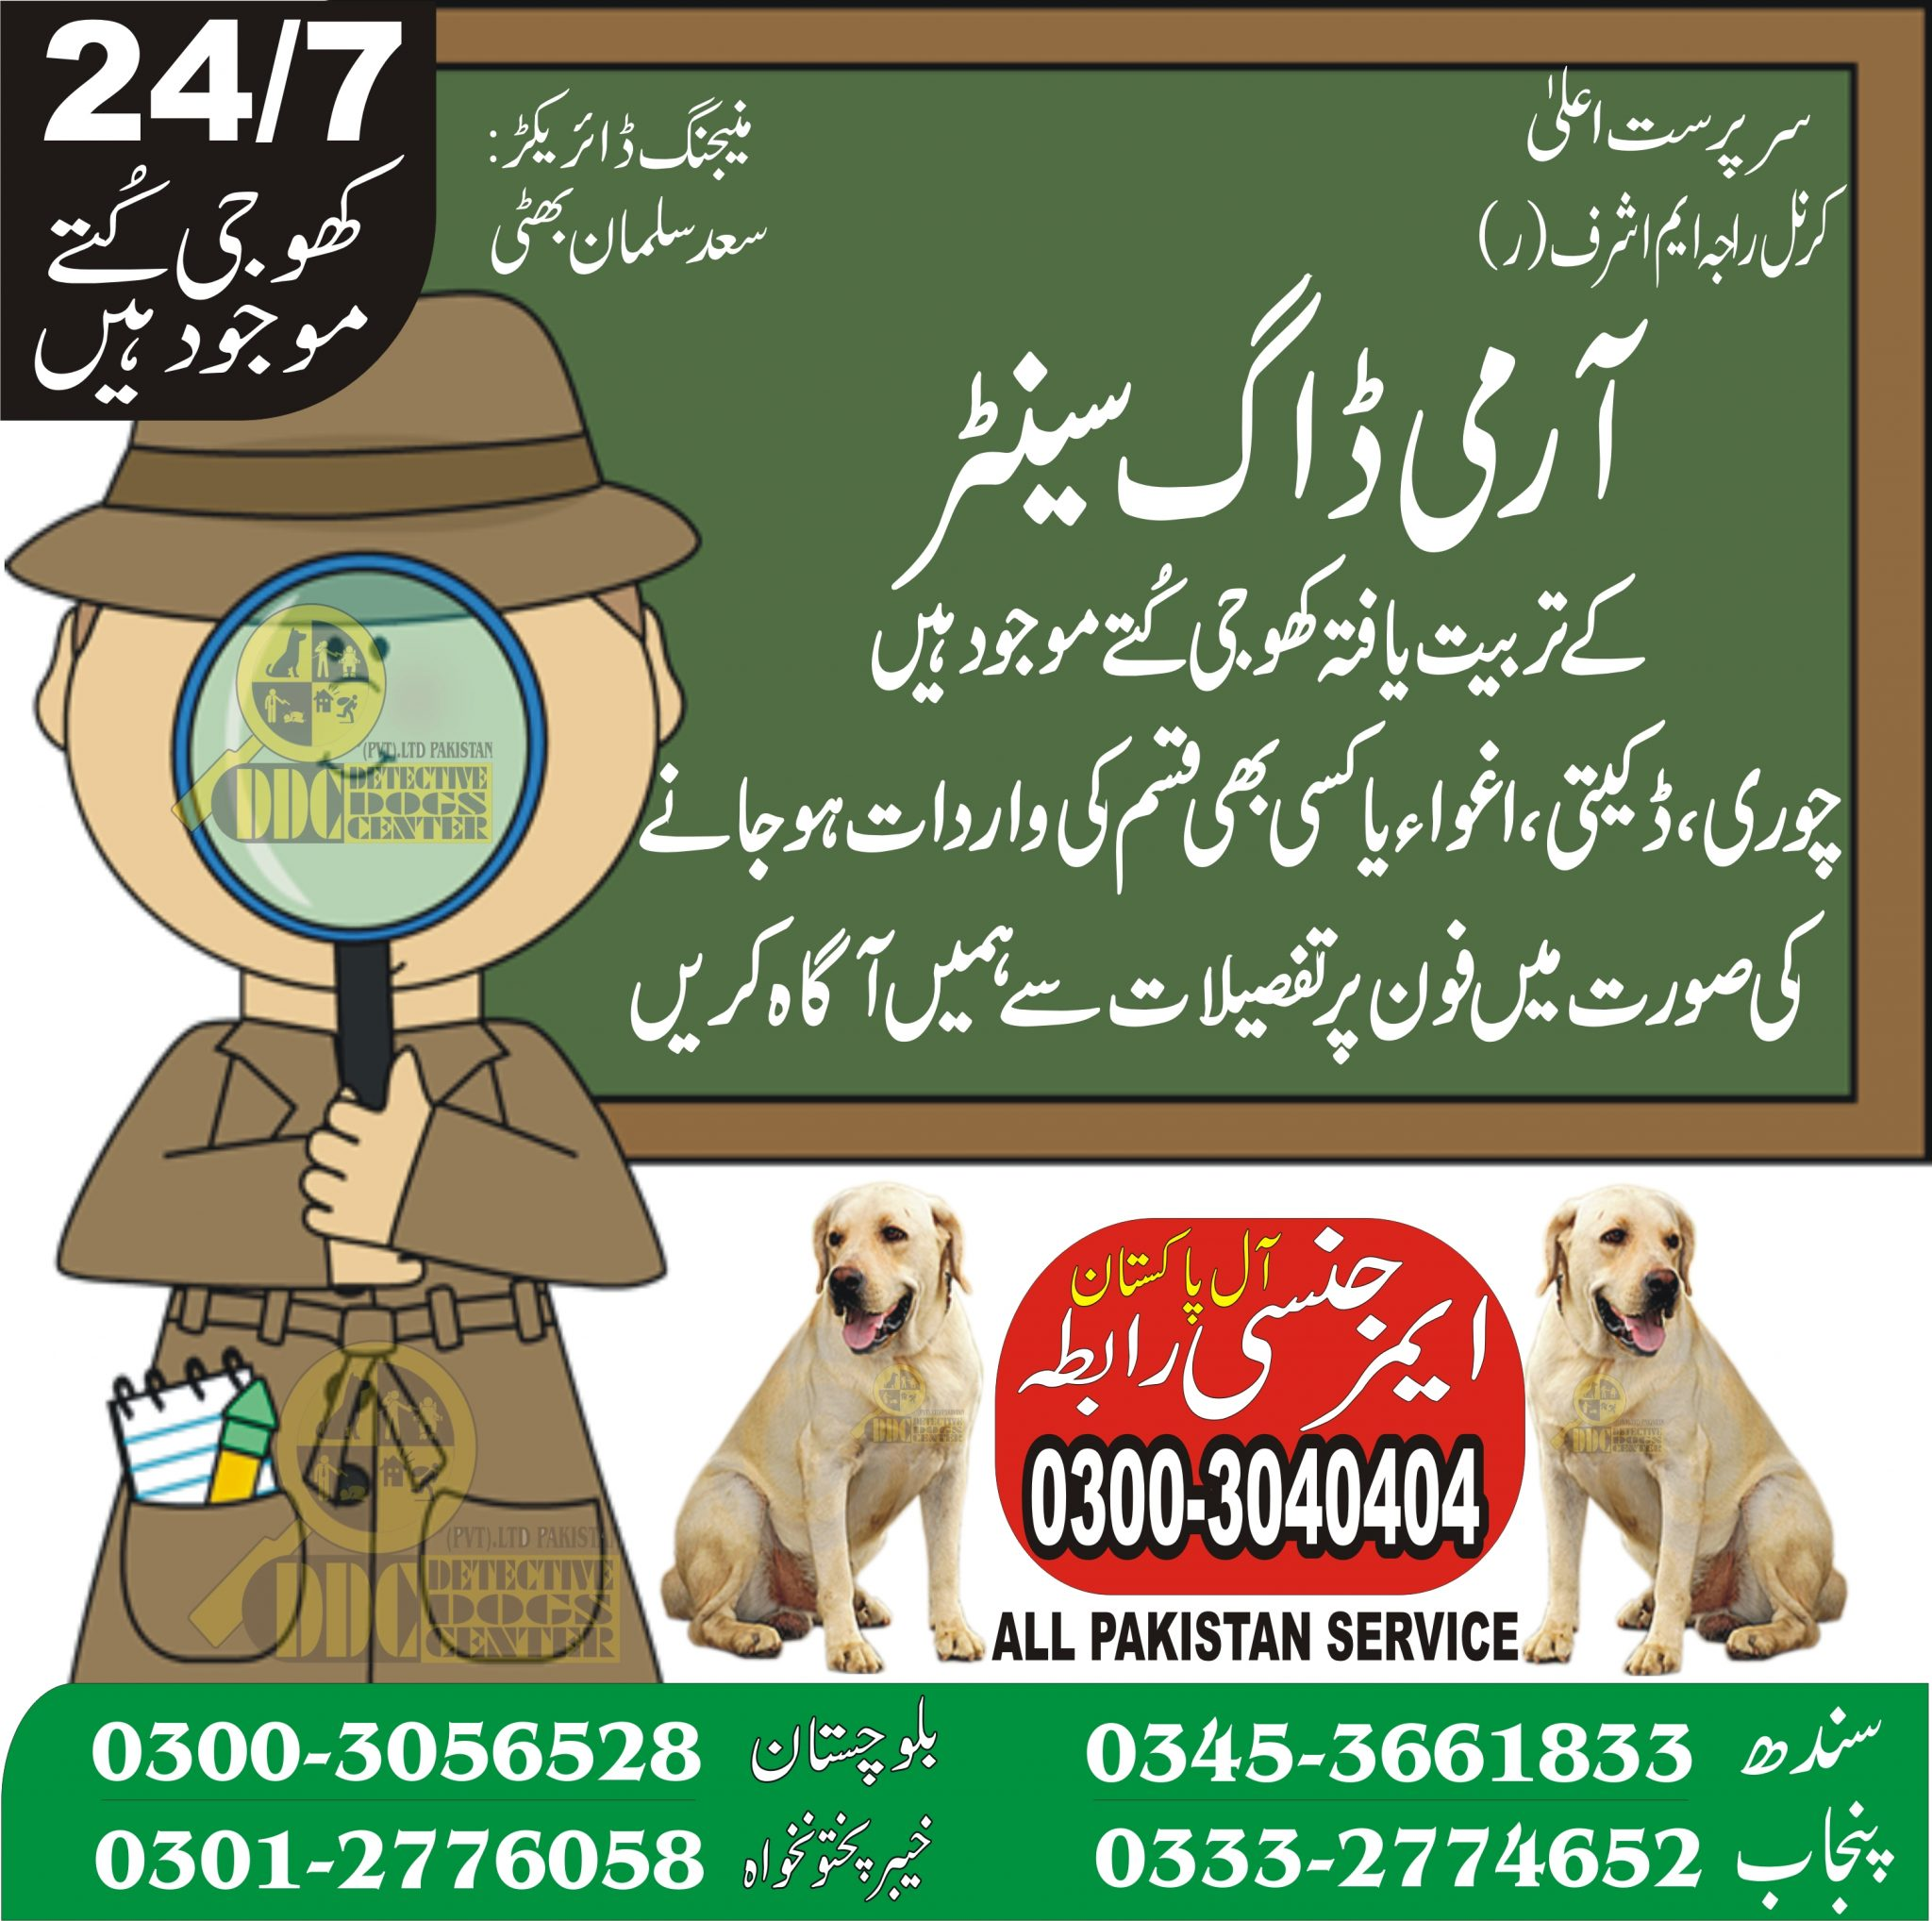 Army Dog Center Good Working Network